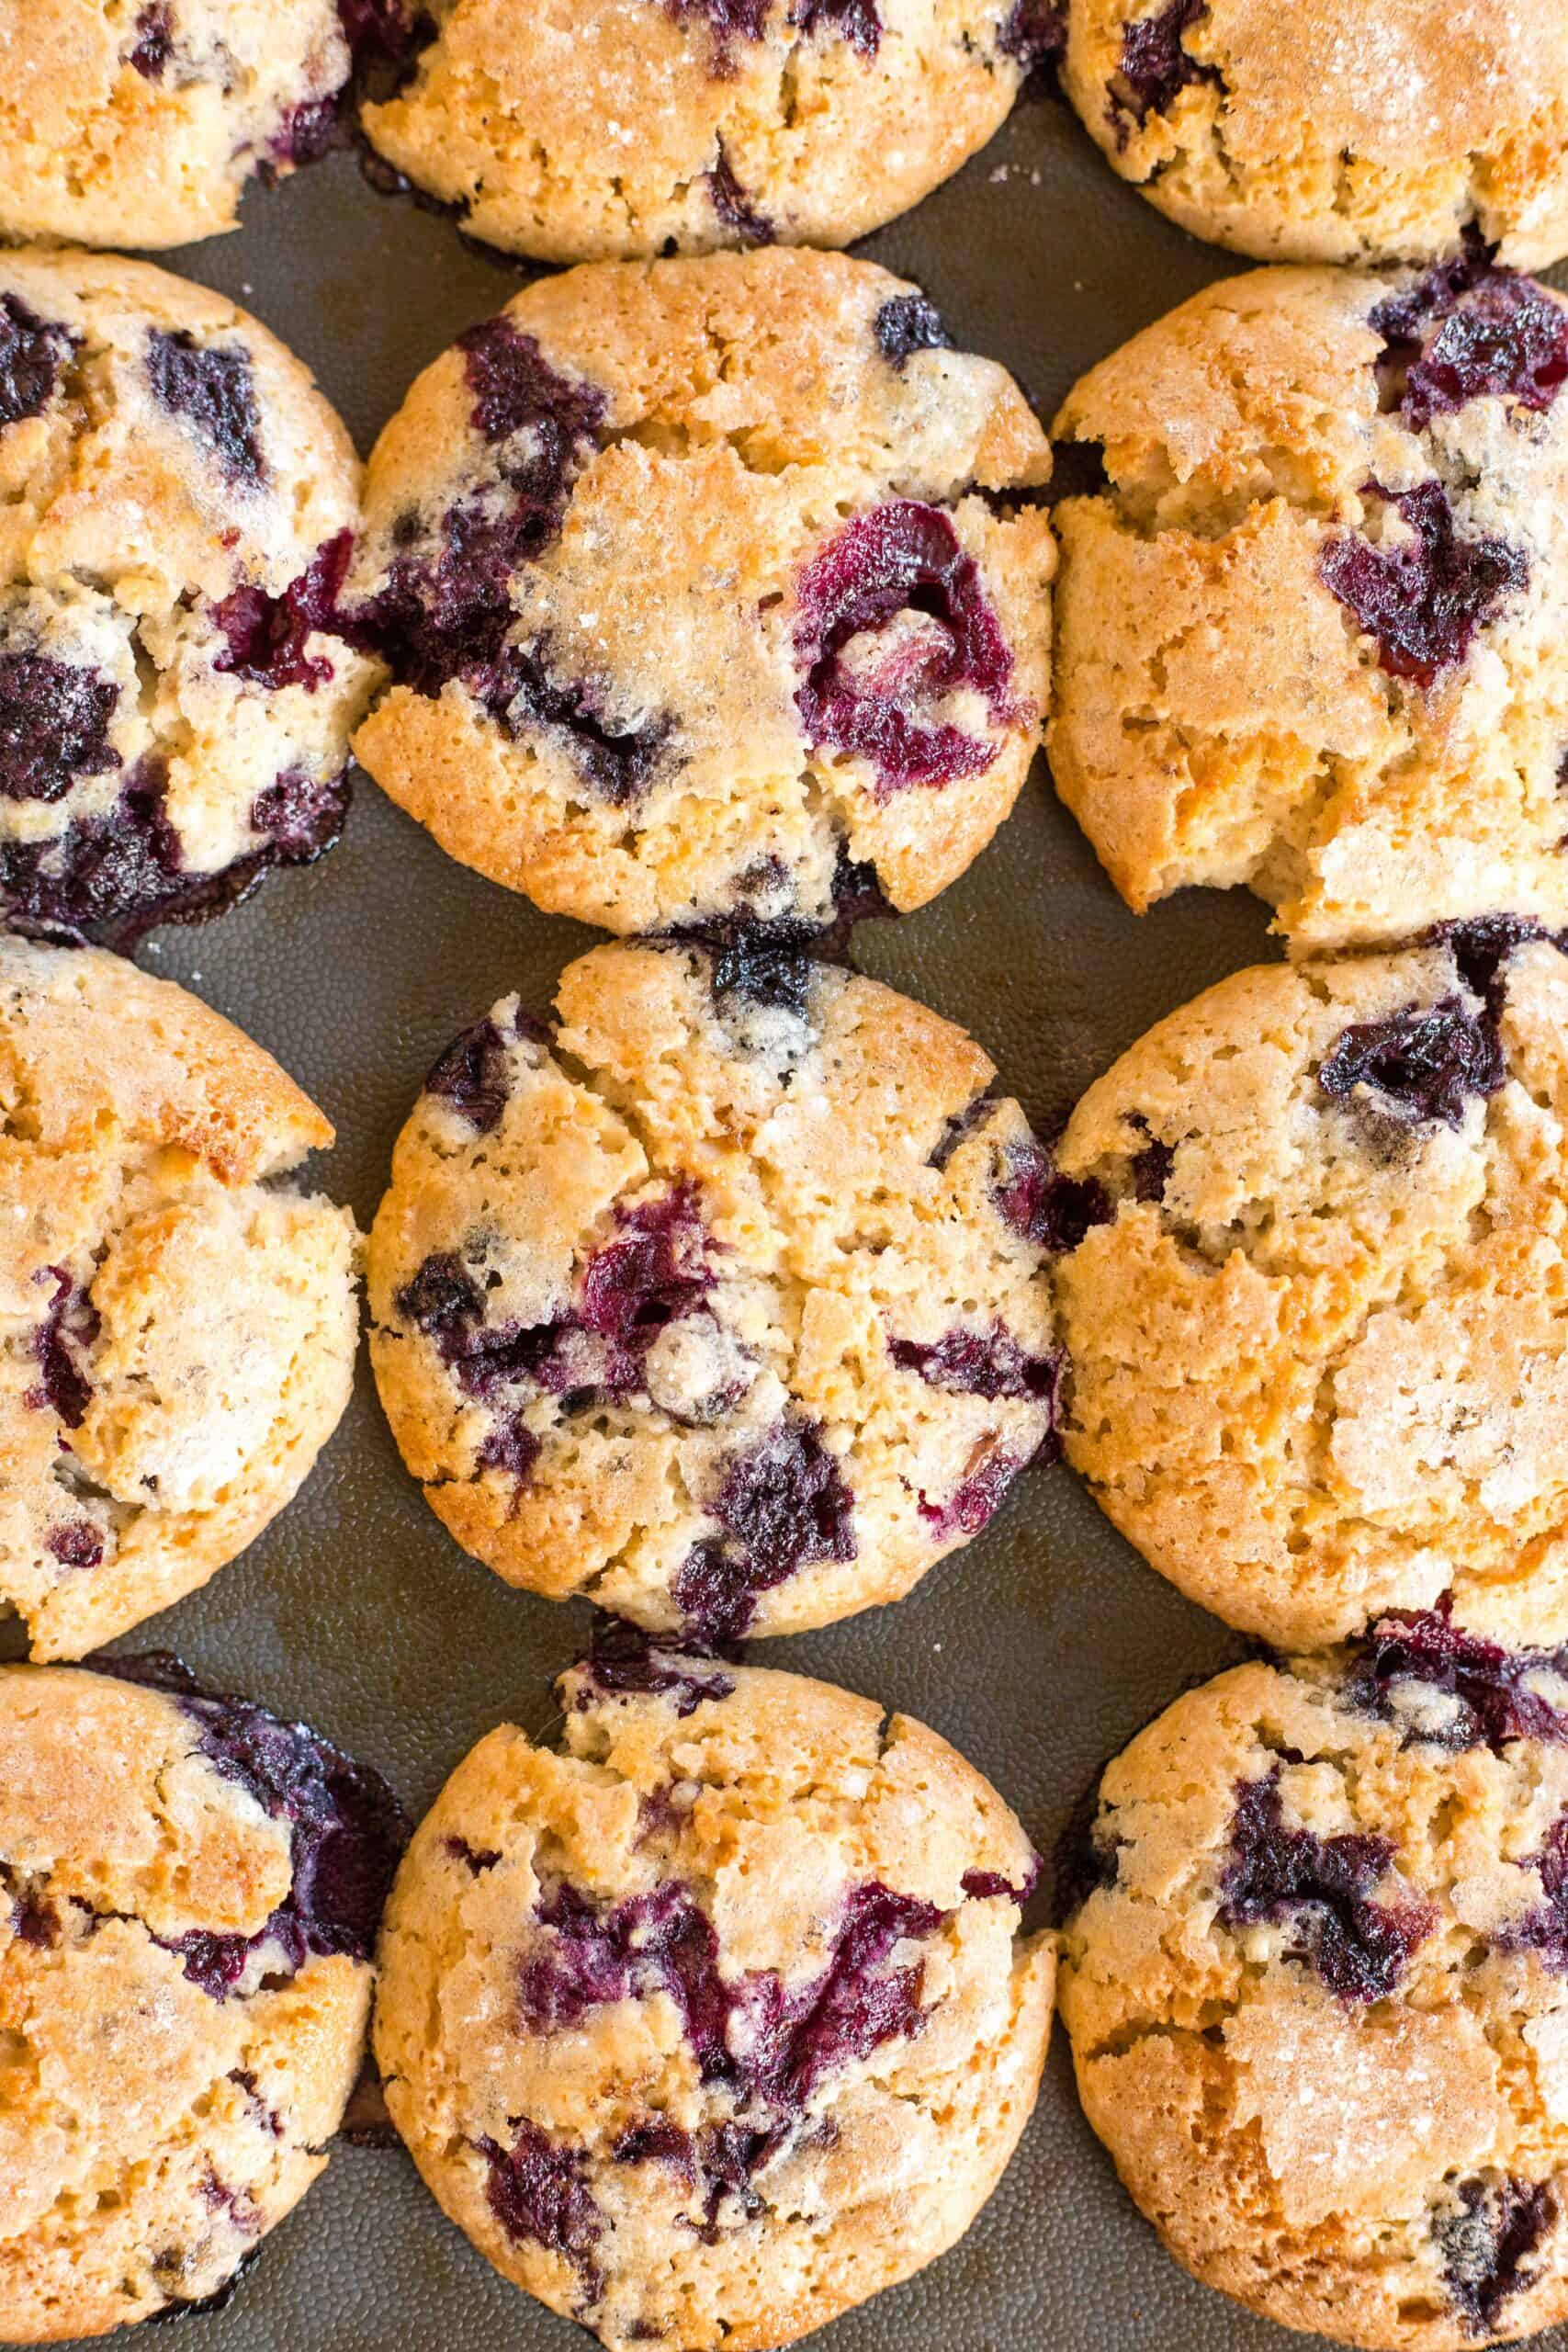 Top down image of gluten-free blueberry muffins in muffin mold.